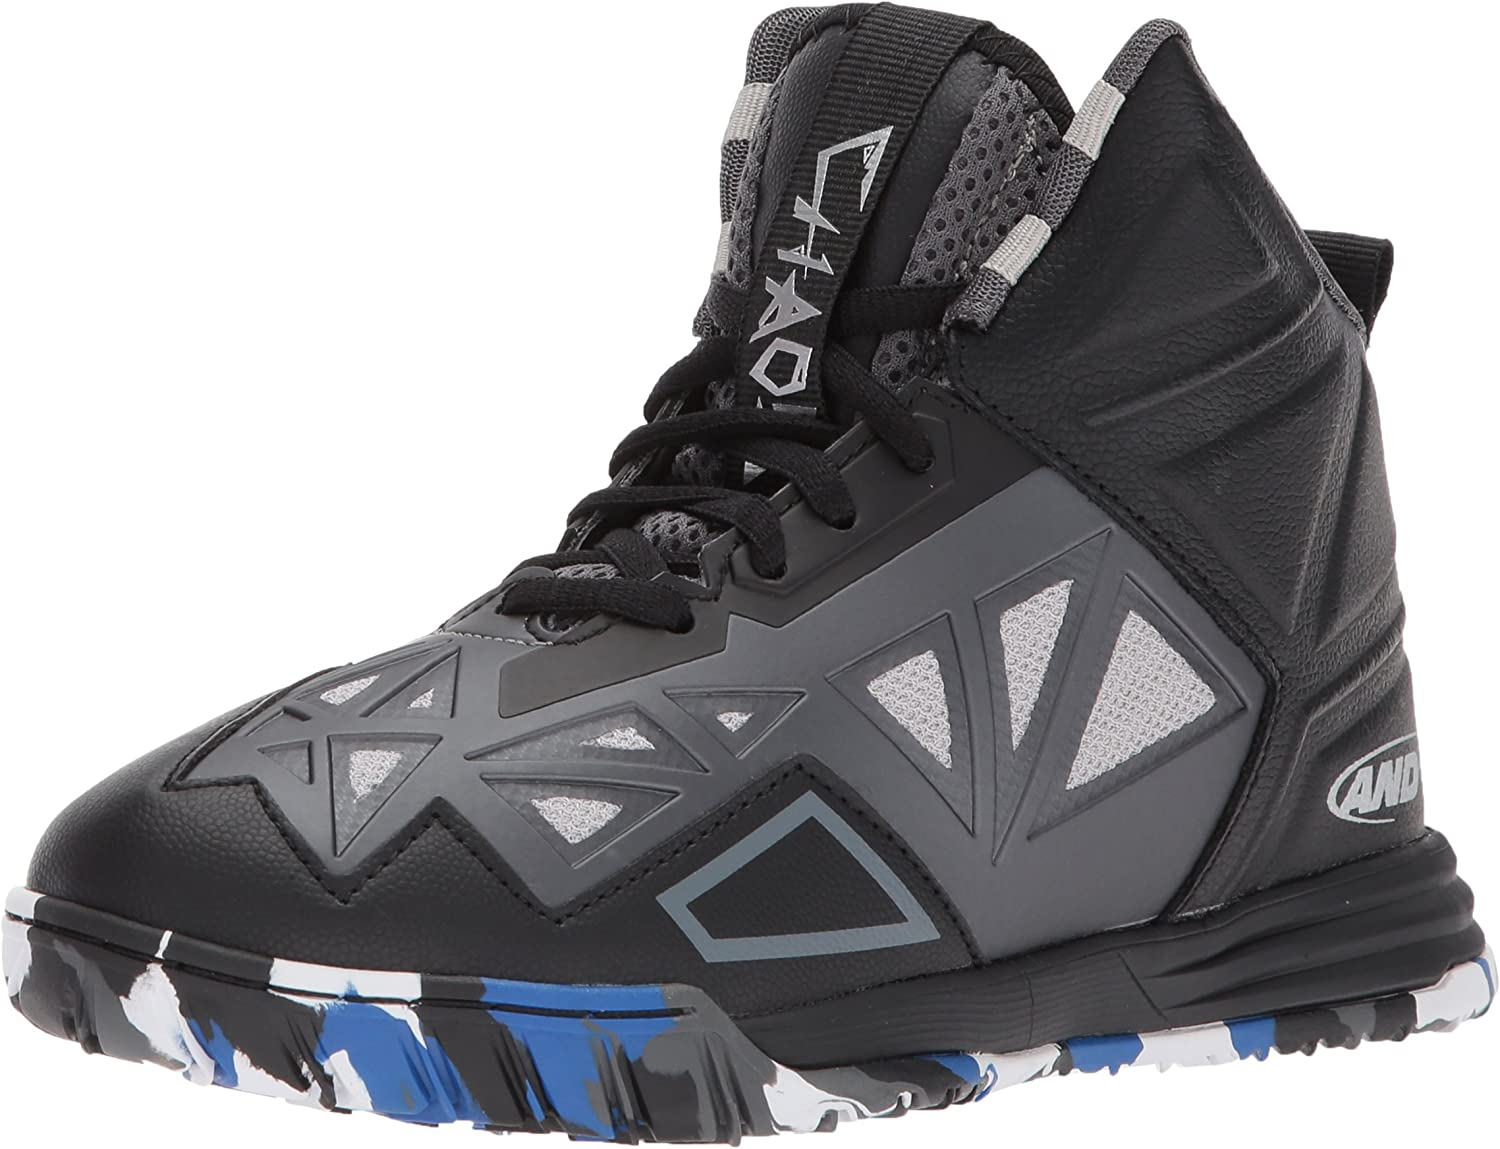 And1 And 1 Tempest Boys AU Skate Basketball Shoes Size 5.5 Black Gray New NWOB